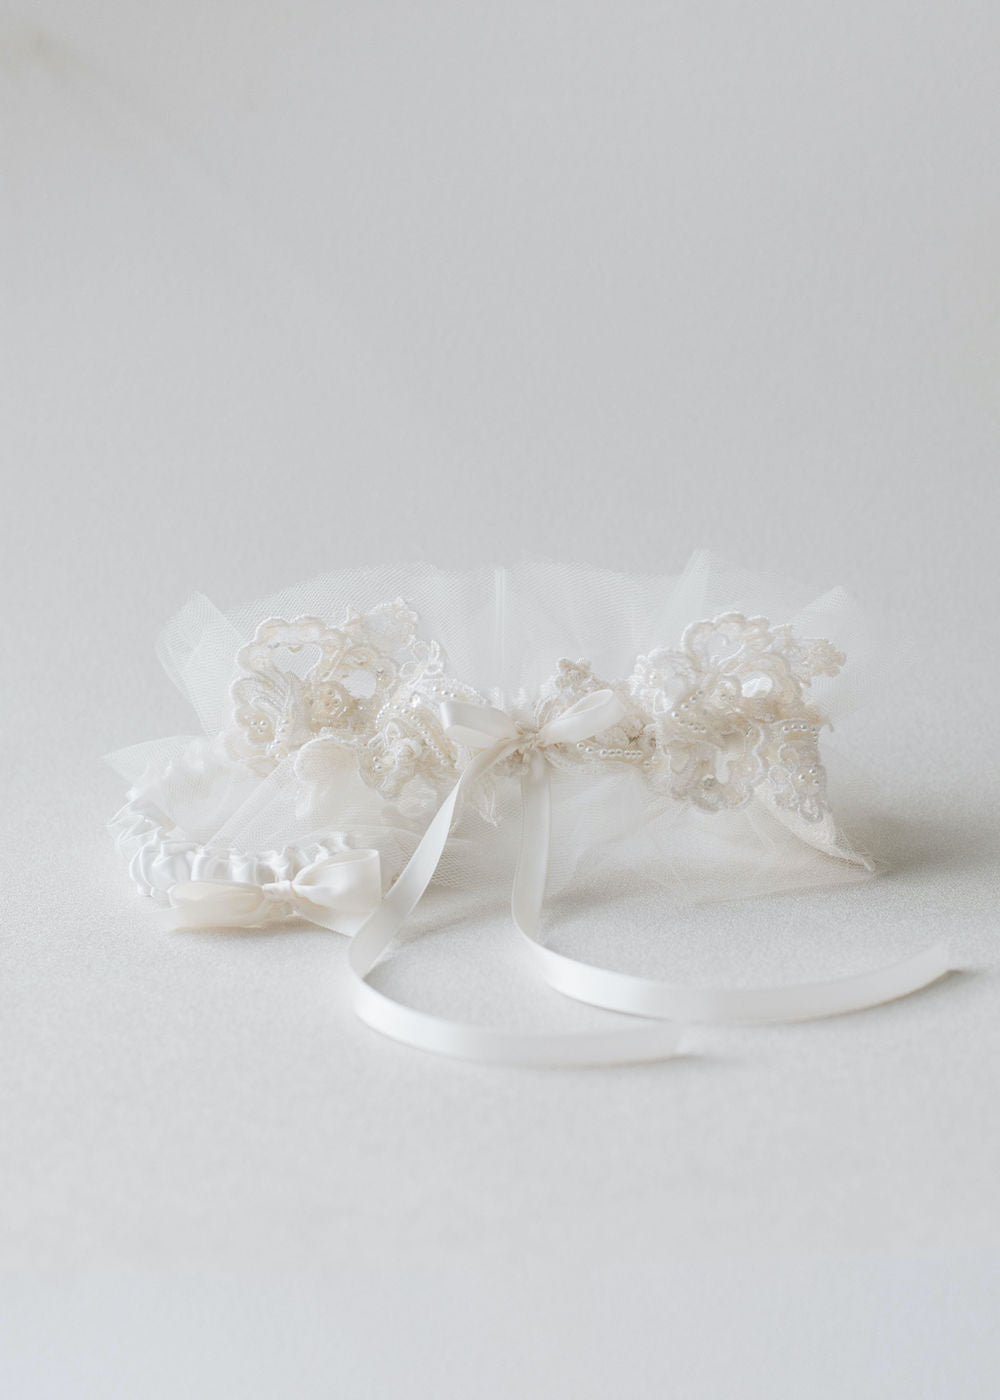 use mother's wedding dress in lace wedding garter set with tulle handmade heirloom by  The Garter Girl